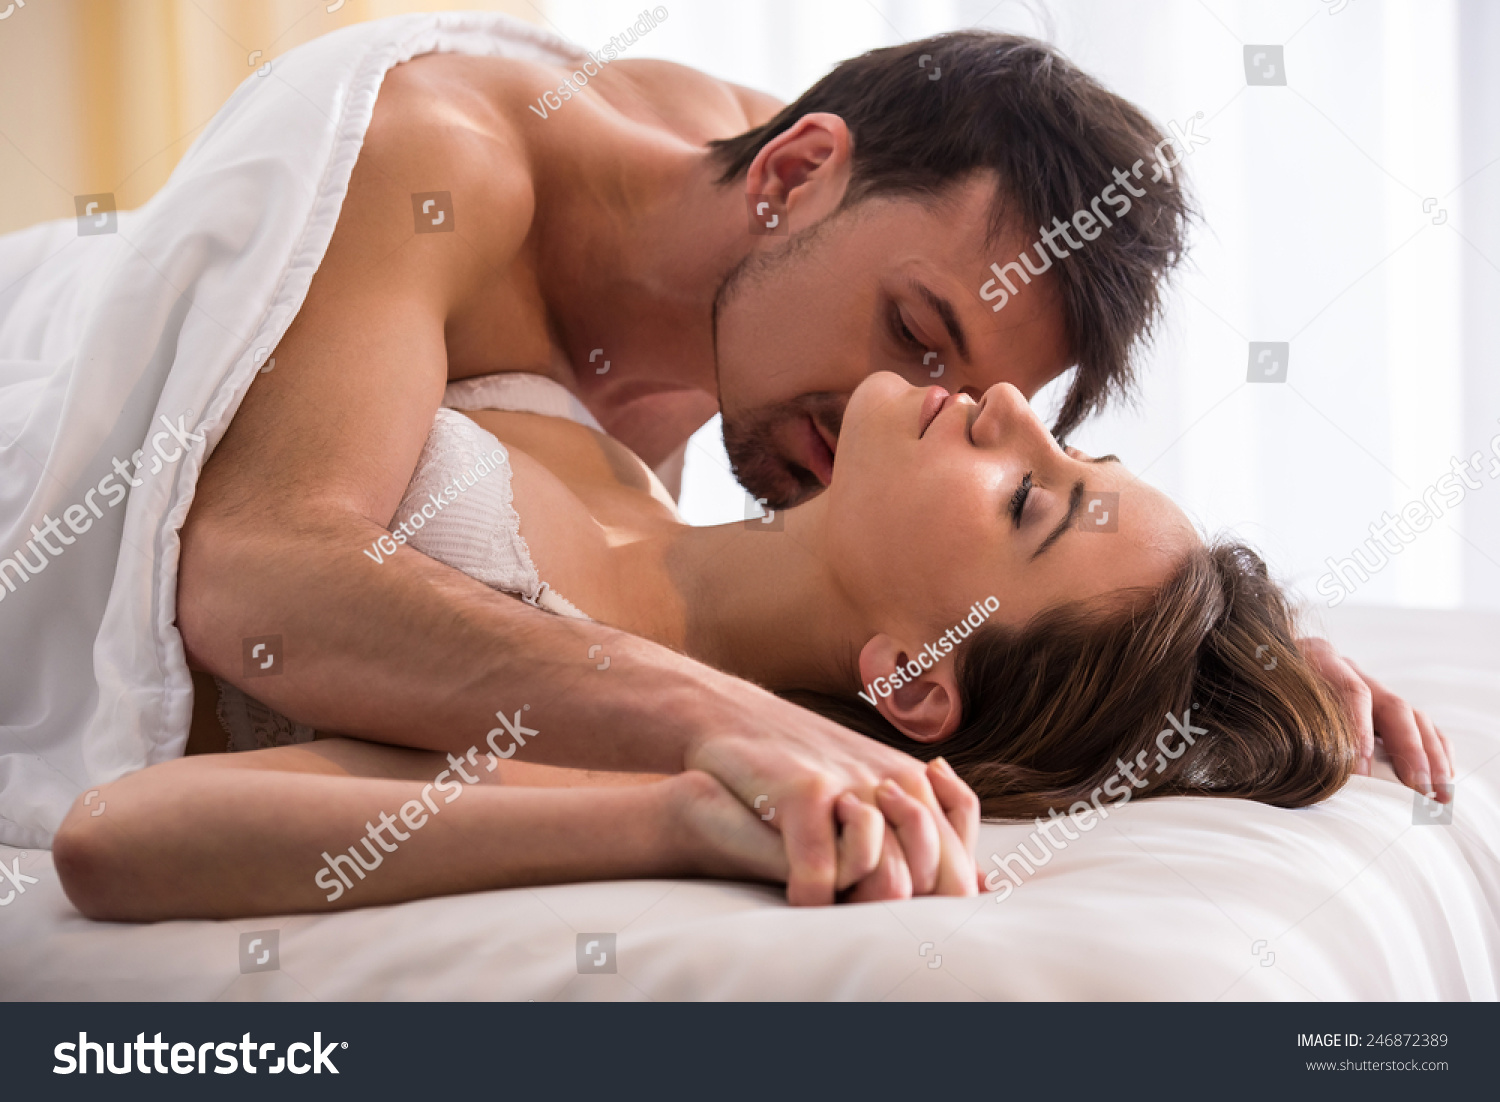 hot couple sex scenes